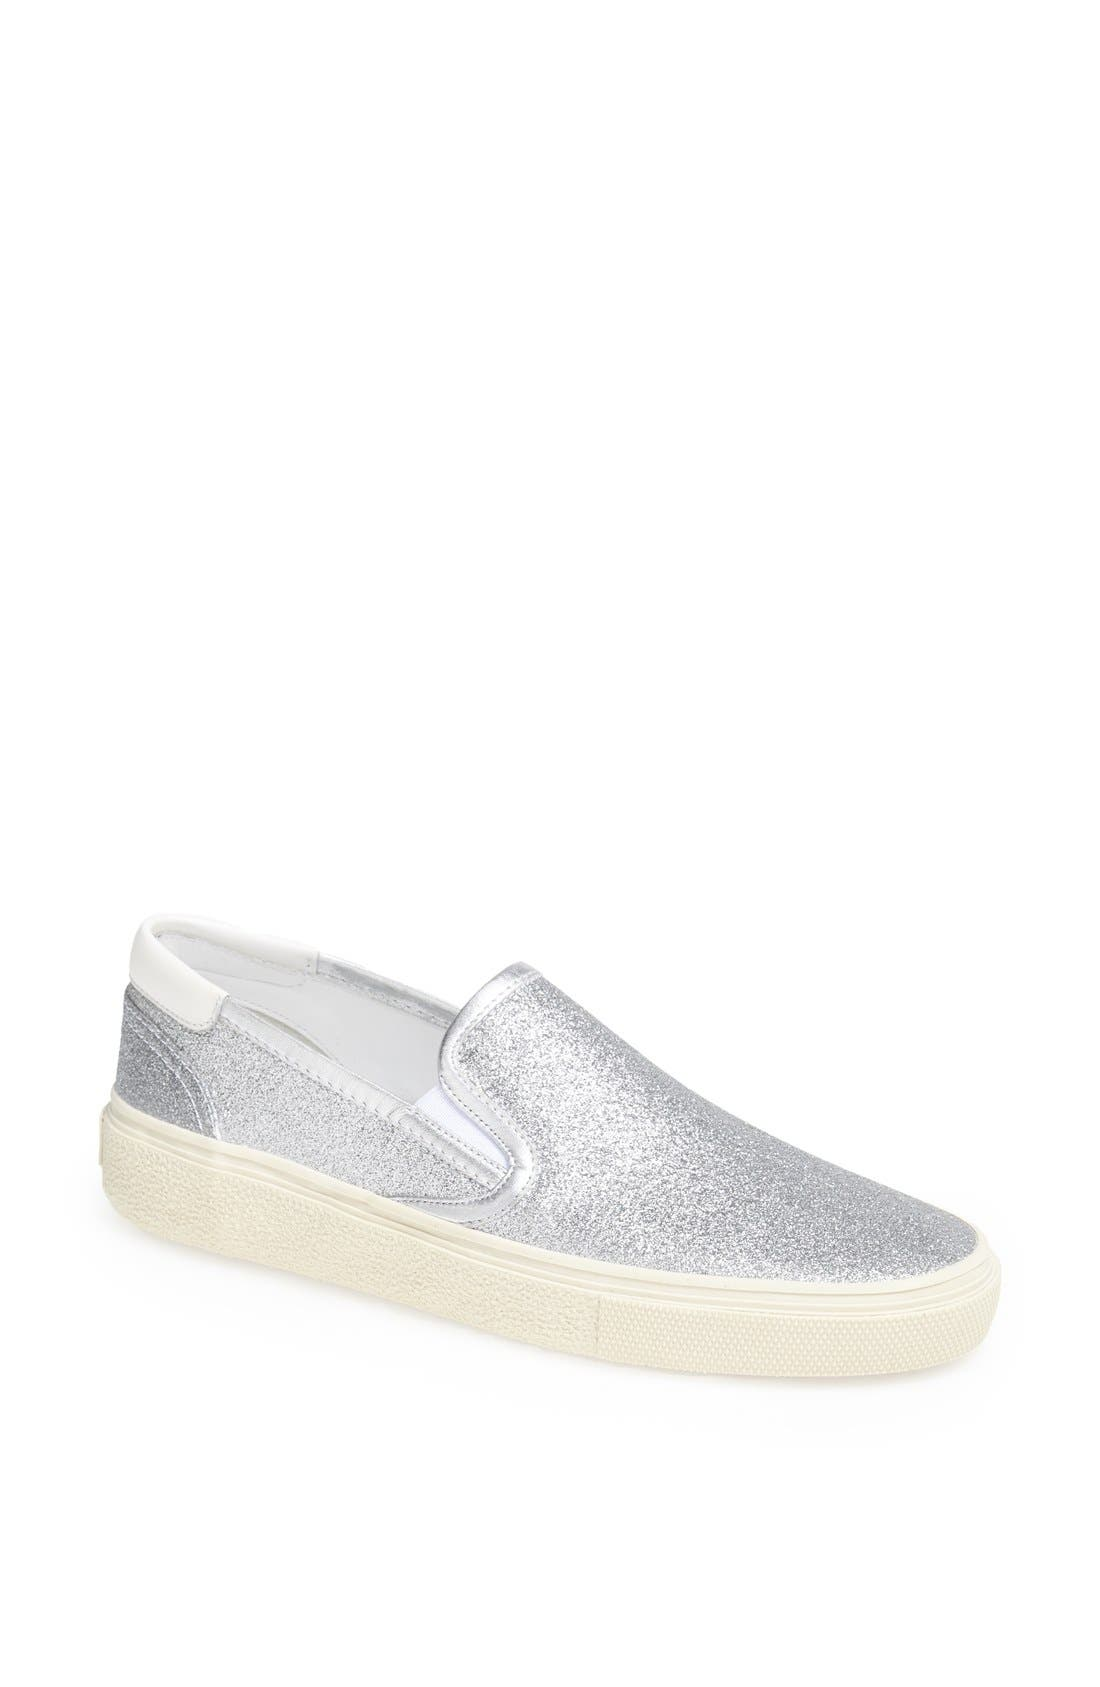 Alternate Image 1 Selected - Saint Laurent 'Skate 20' Glitter Slip-On Sneaker (Women)